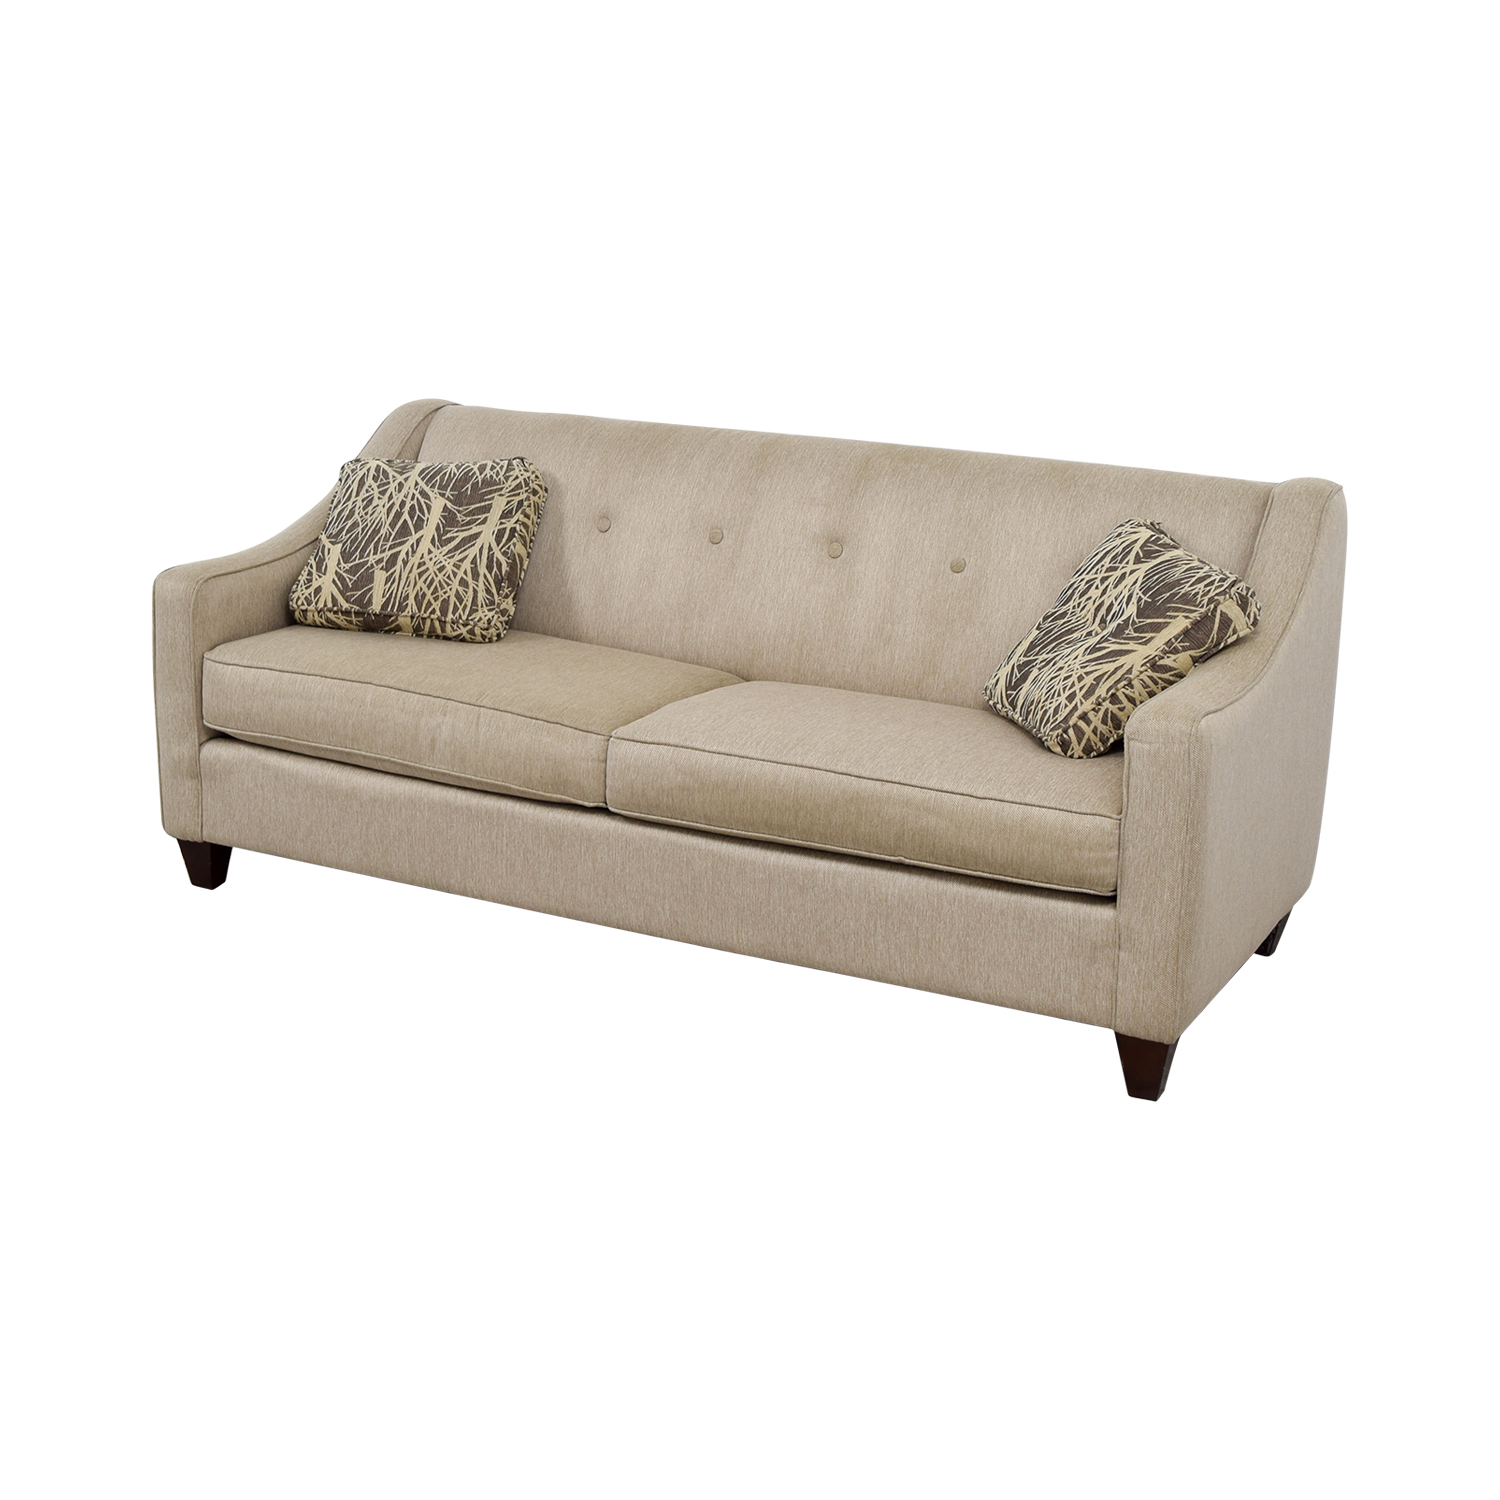 star furniture sofas armless sectional sofa pieces 73 off colton